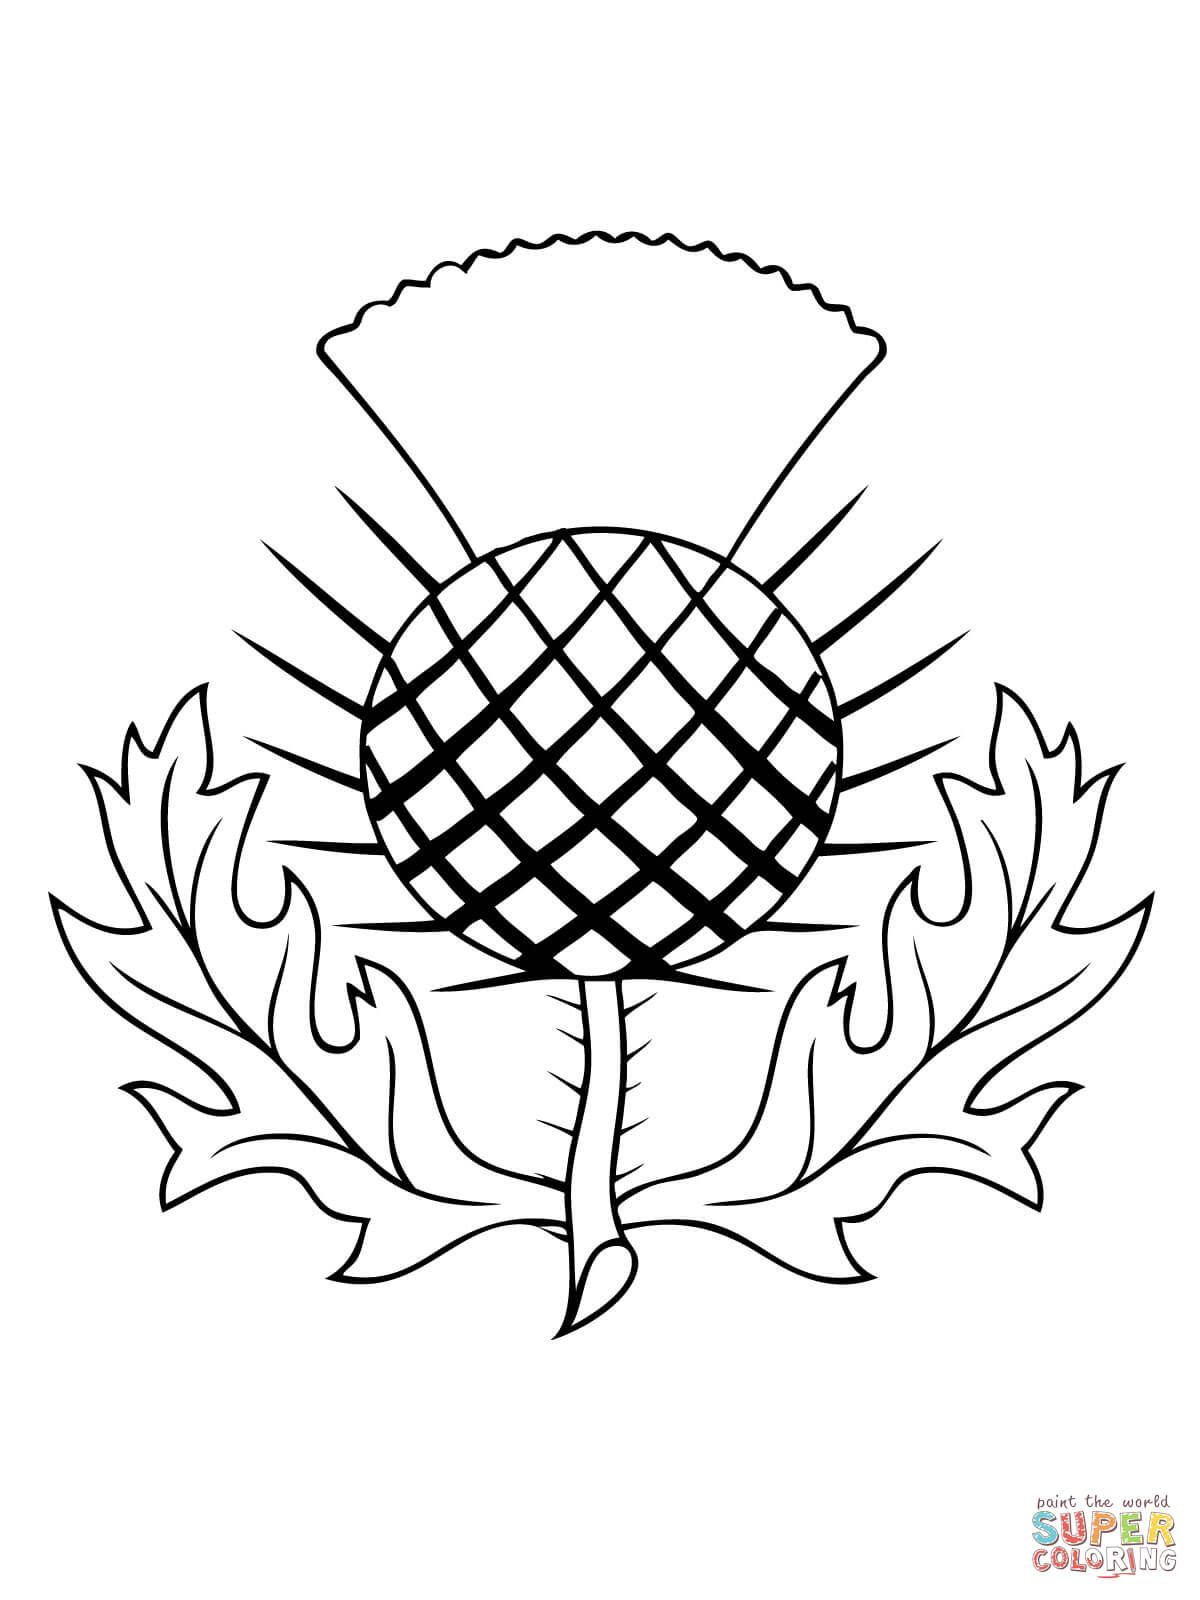 The Thistle Of Scotland Coloring Page | Free Printable Coloring - Free Printable Scottish Flag